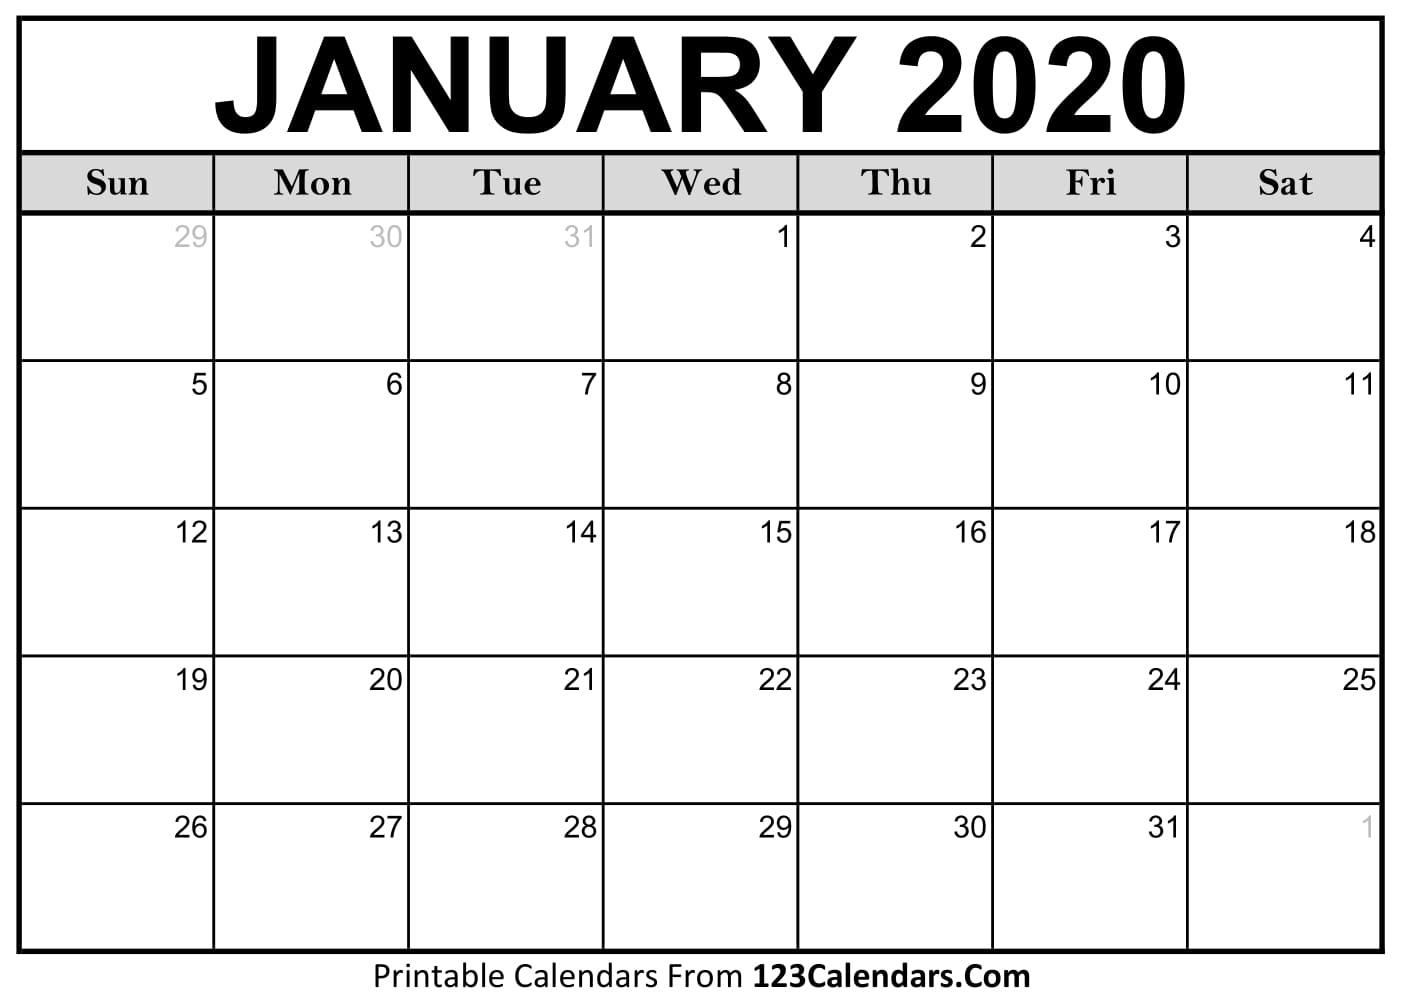 photo relating to January Calendar Printable known as January 2020 Printable Calendar